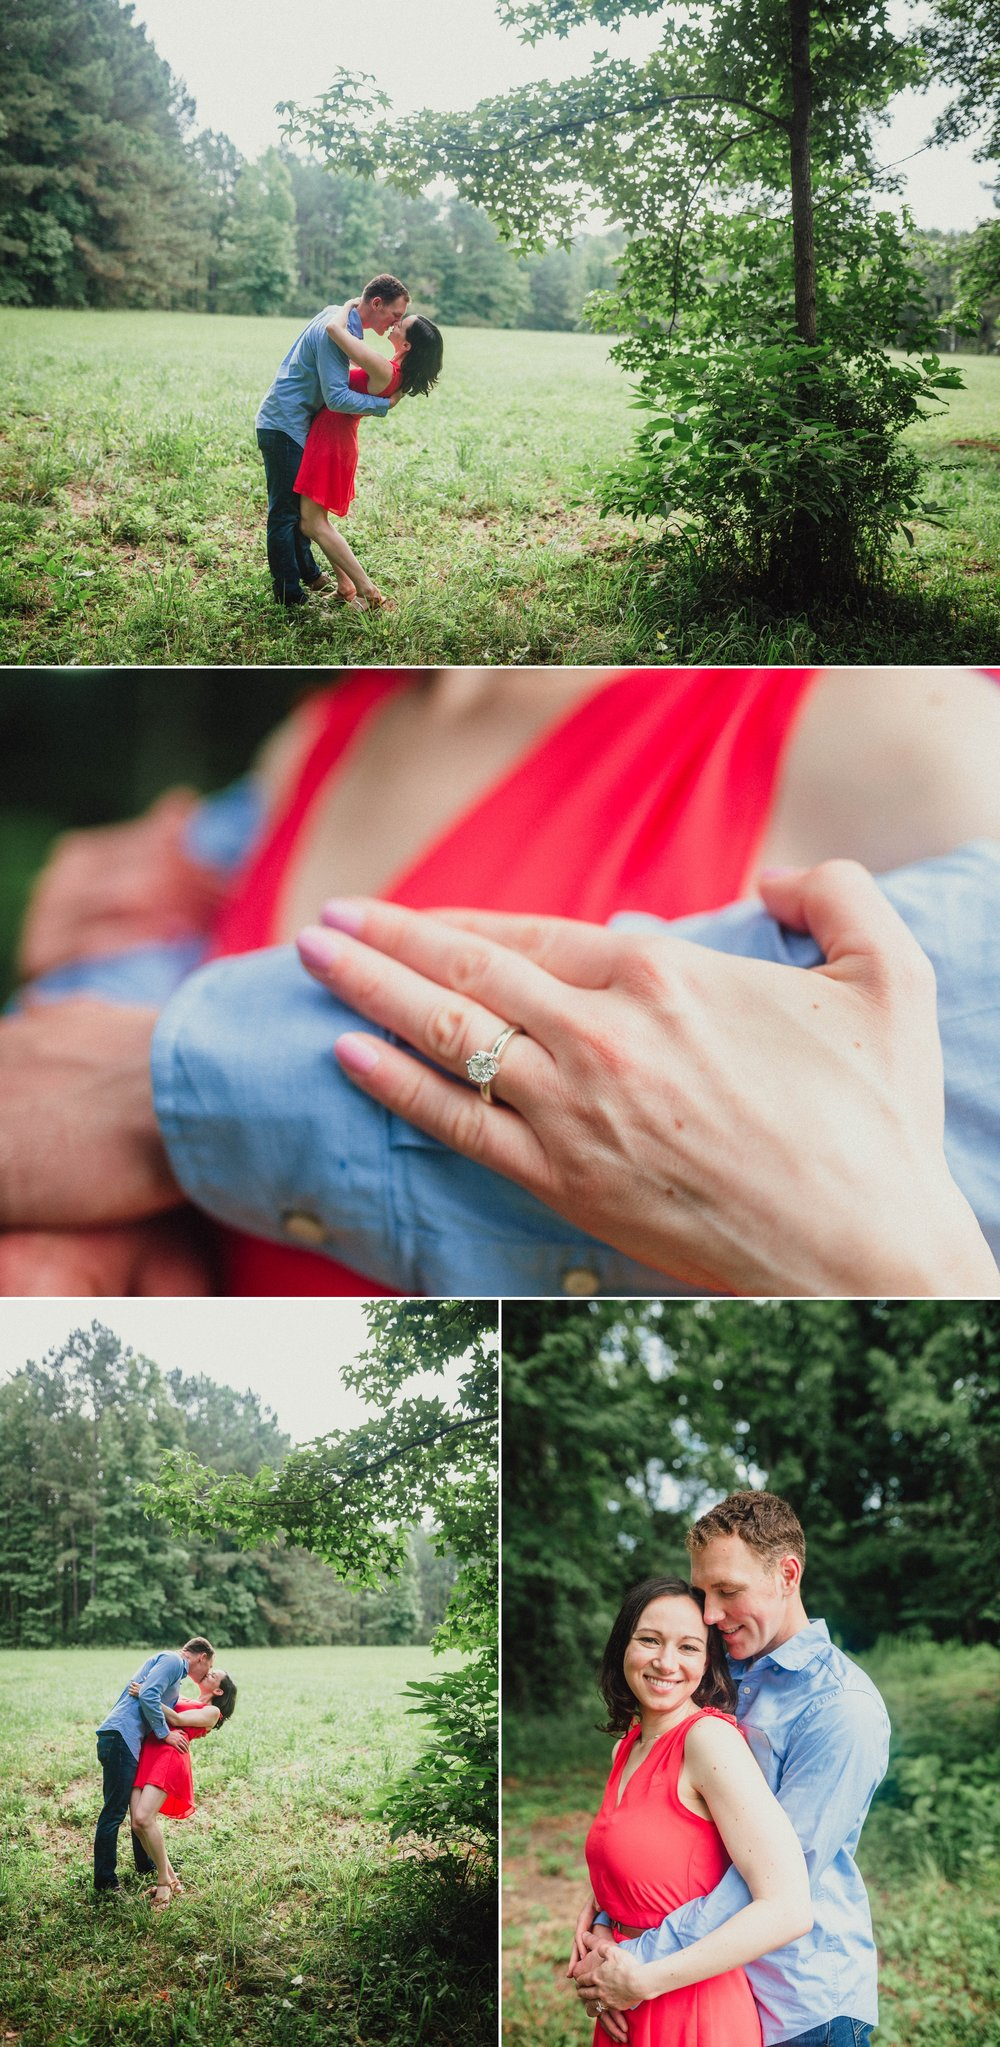 Sarah + Kyle - Engagement Photography Session in Fayetteville, North carolina 5.jpg